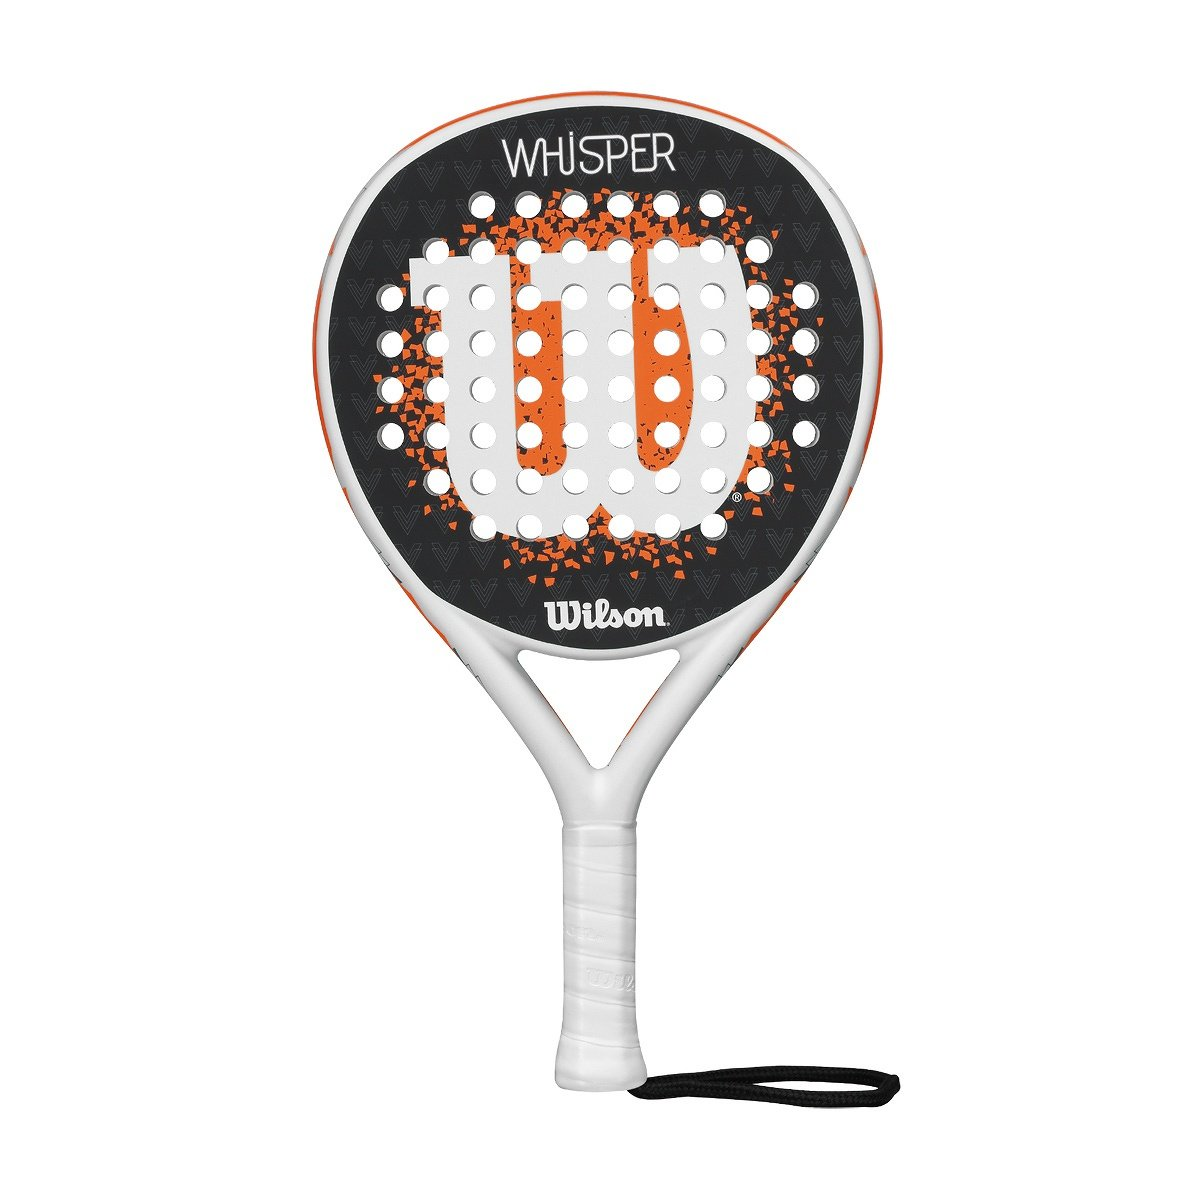 Wilson Whisper Paddle RKT WHOR - Pala de pádel, Color Blanco ...